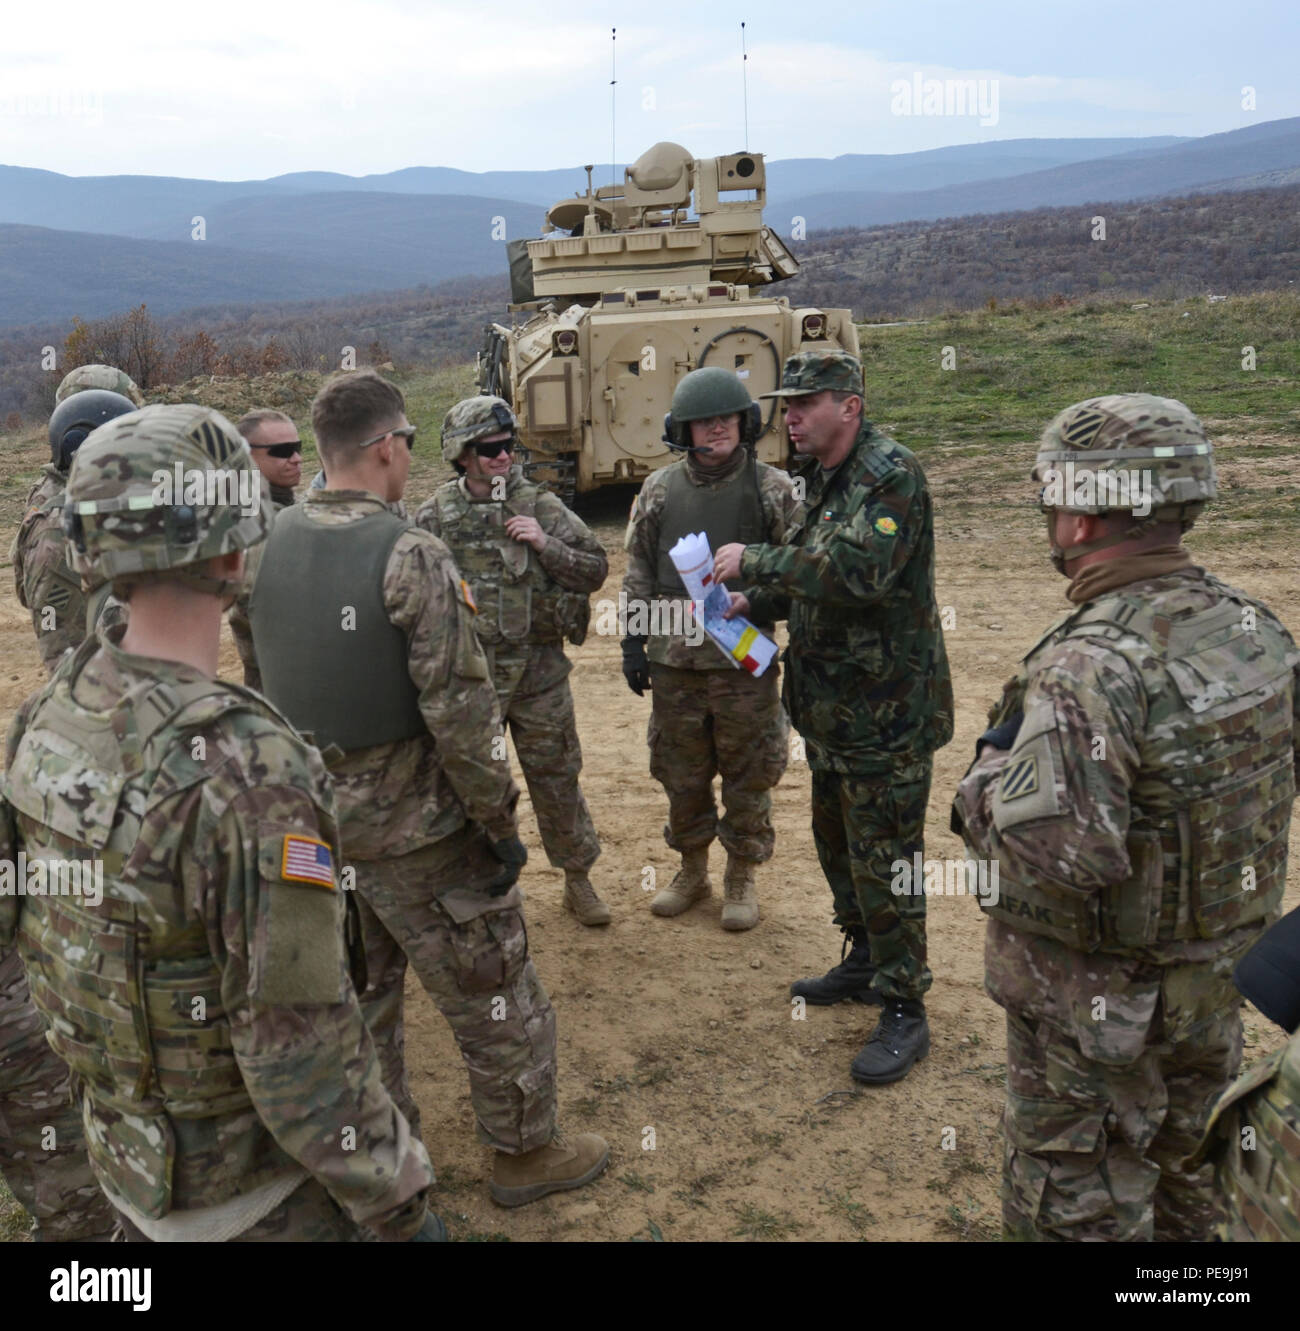 Bulgarian and U.S. Army key leaders and soldiers conduct an after action review (AAR) during Exercise Peace Sentinel at Novo Selo Training Center, Bulgaria, Nov. 21, 2015. An AAR is a professional discussion of an event or exercise that is focused on performance and standards. It allows soldiers and leaders to discuss what actions could use improvements and what actions should be sustained. (Photo by Staff Sgt. Steven M. Colvin/Released) - Stock Image